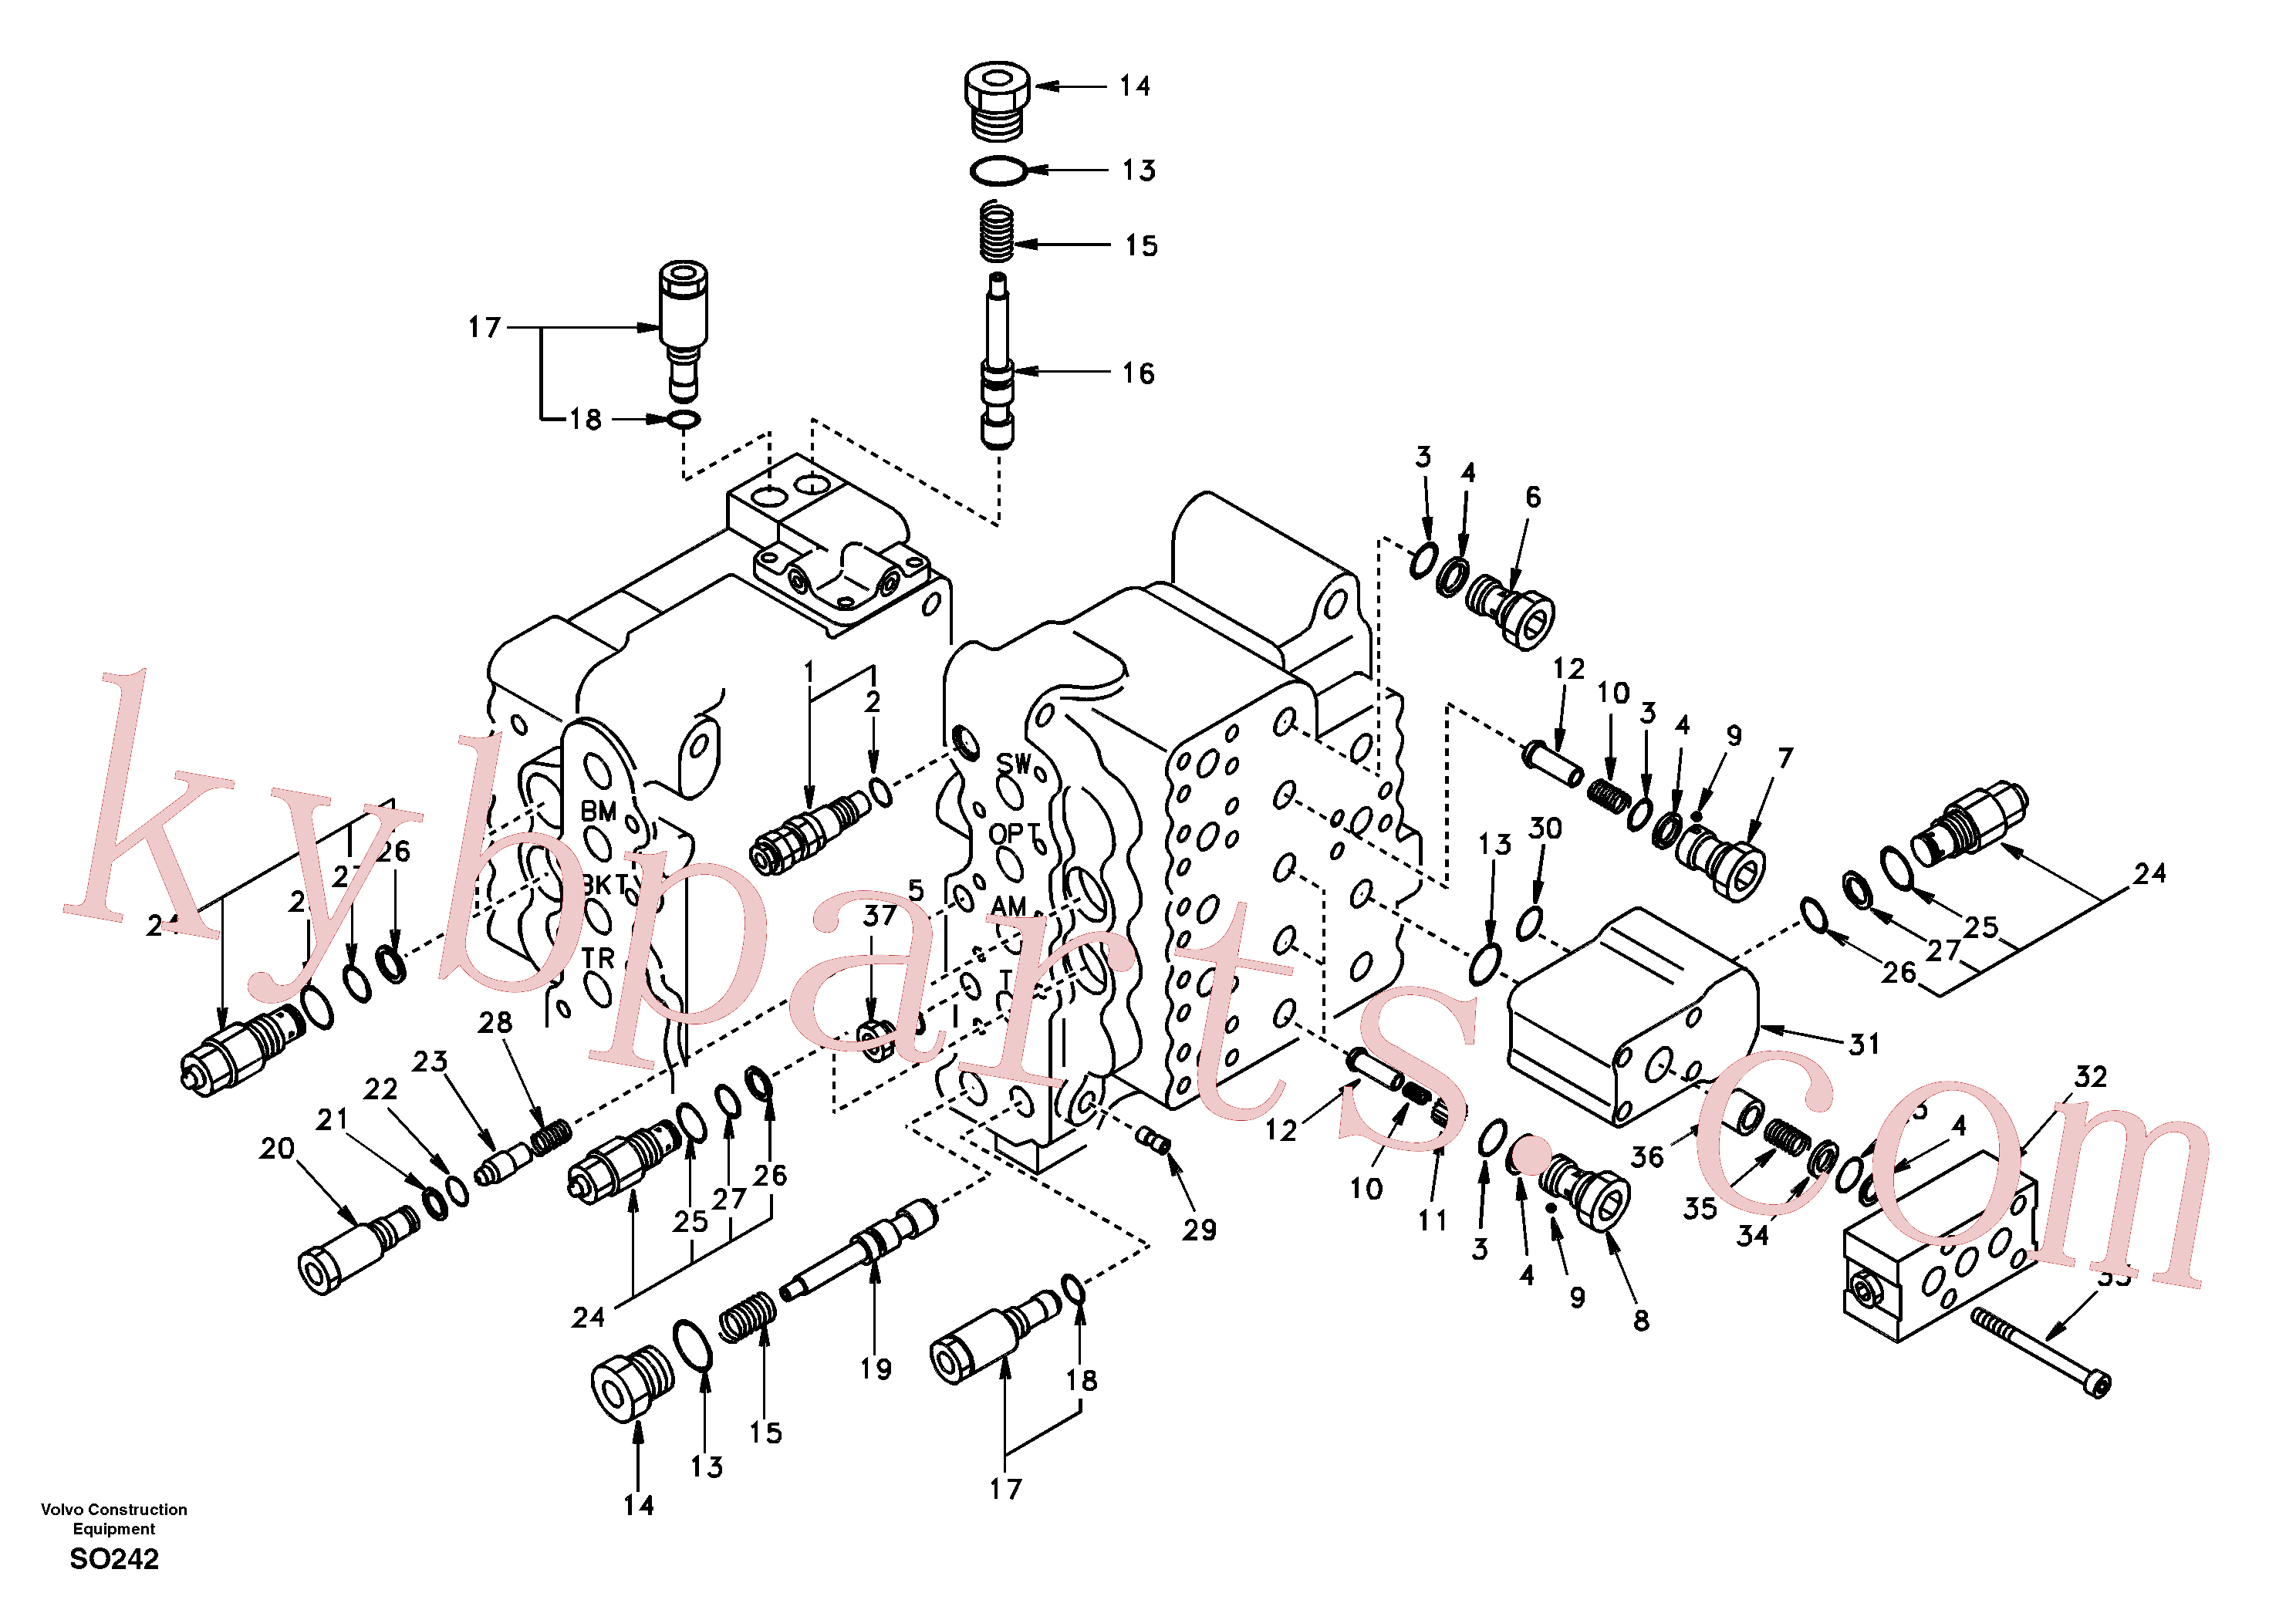 SA8230-13030 for Volvo Main control valve, relief valve and dipper arm holding(SO242 assembly)